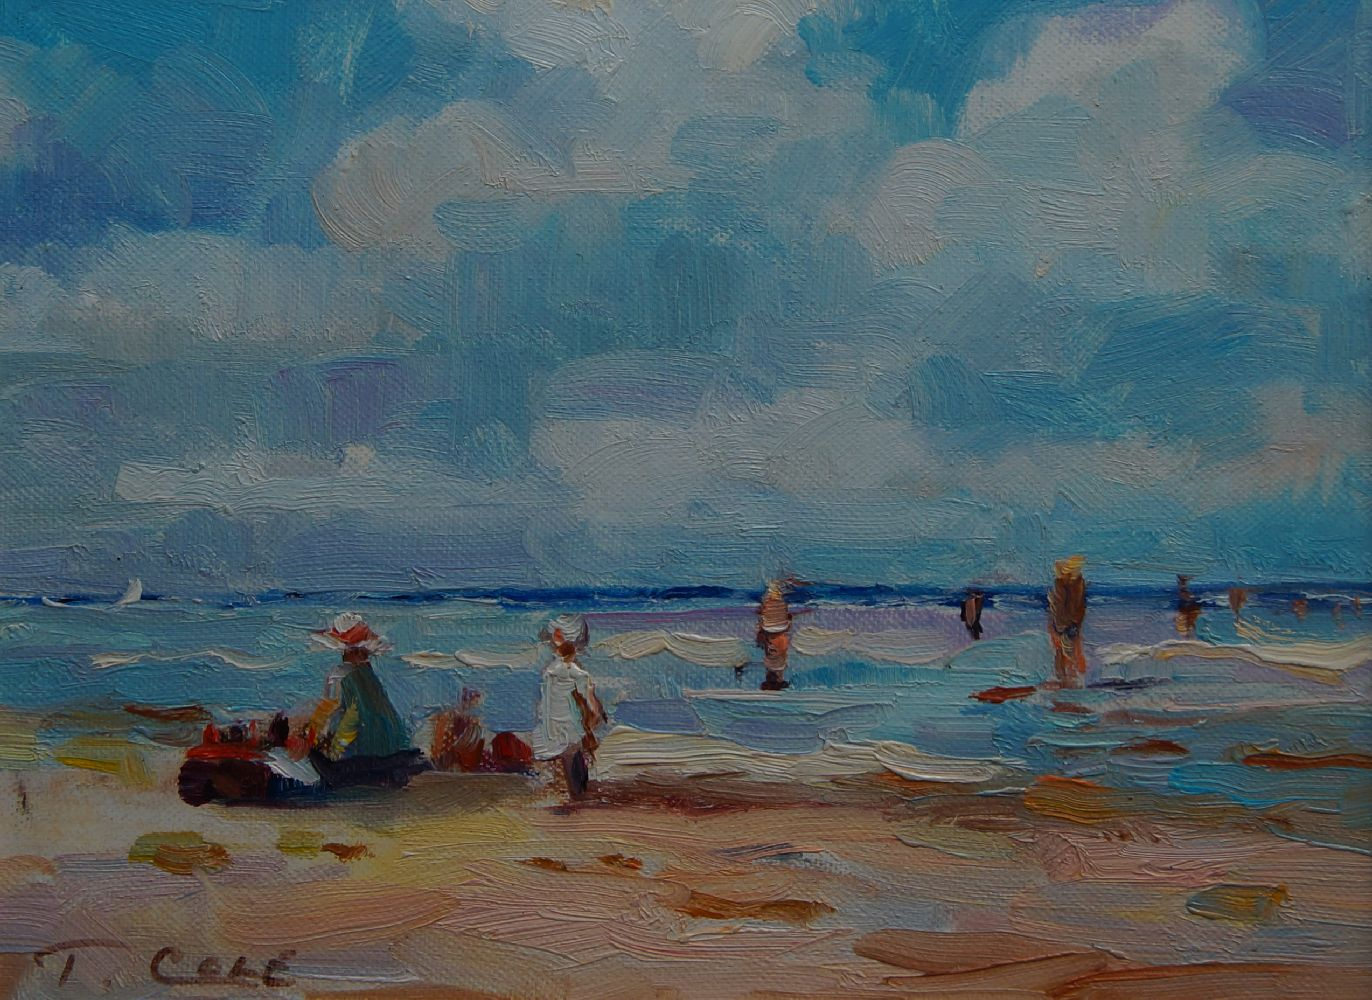 T Cole, American, late 20th century- A picnic at the seaside; oil on canvas, signed, 20x25.3cm